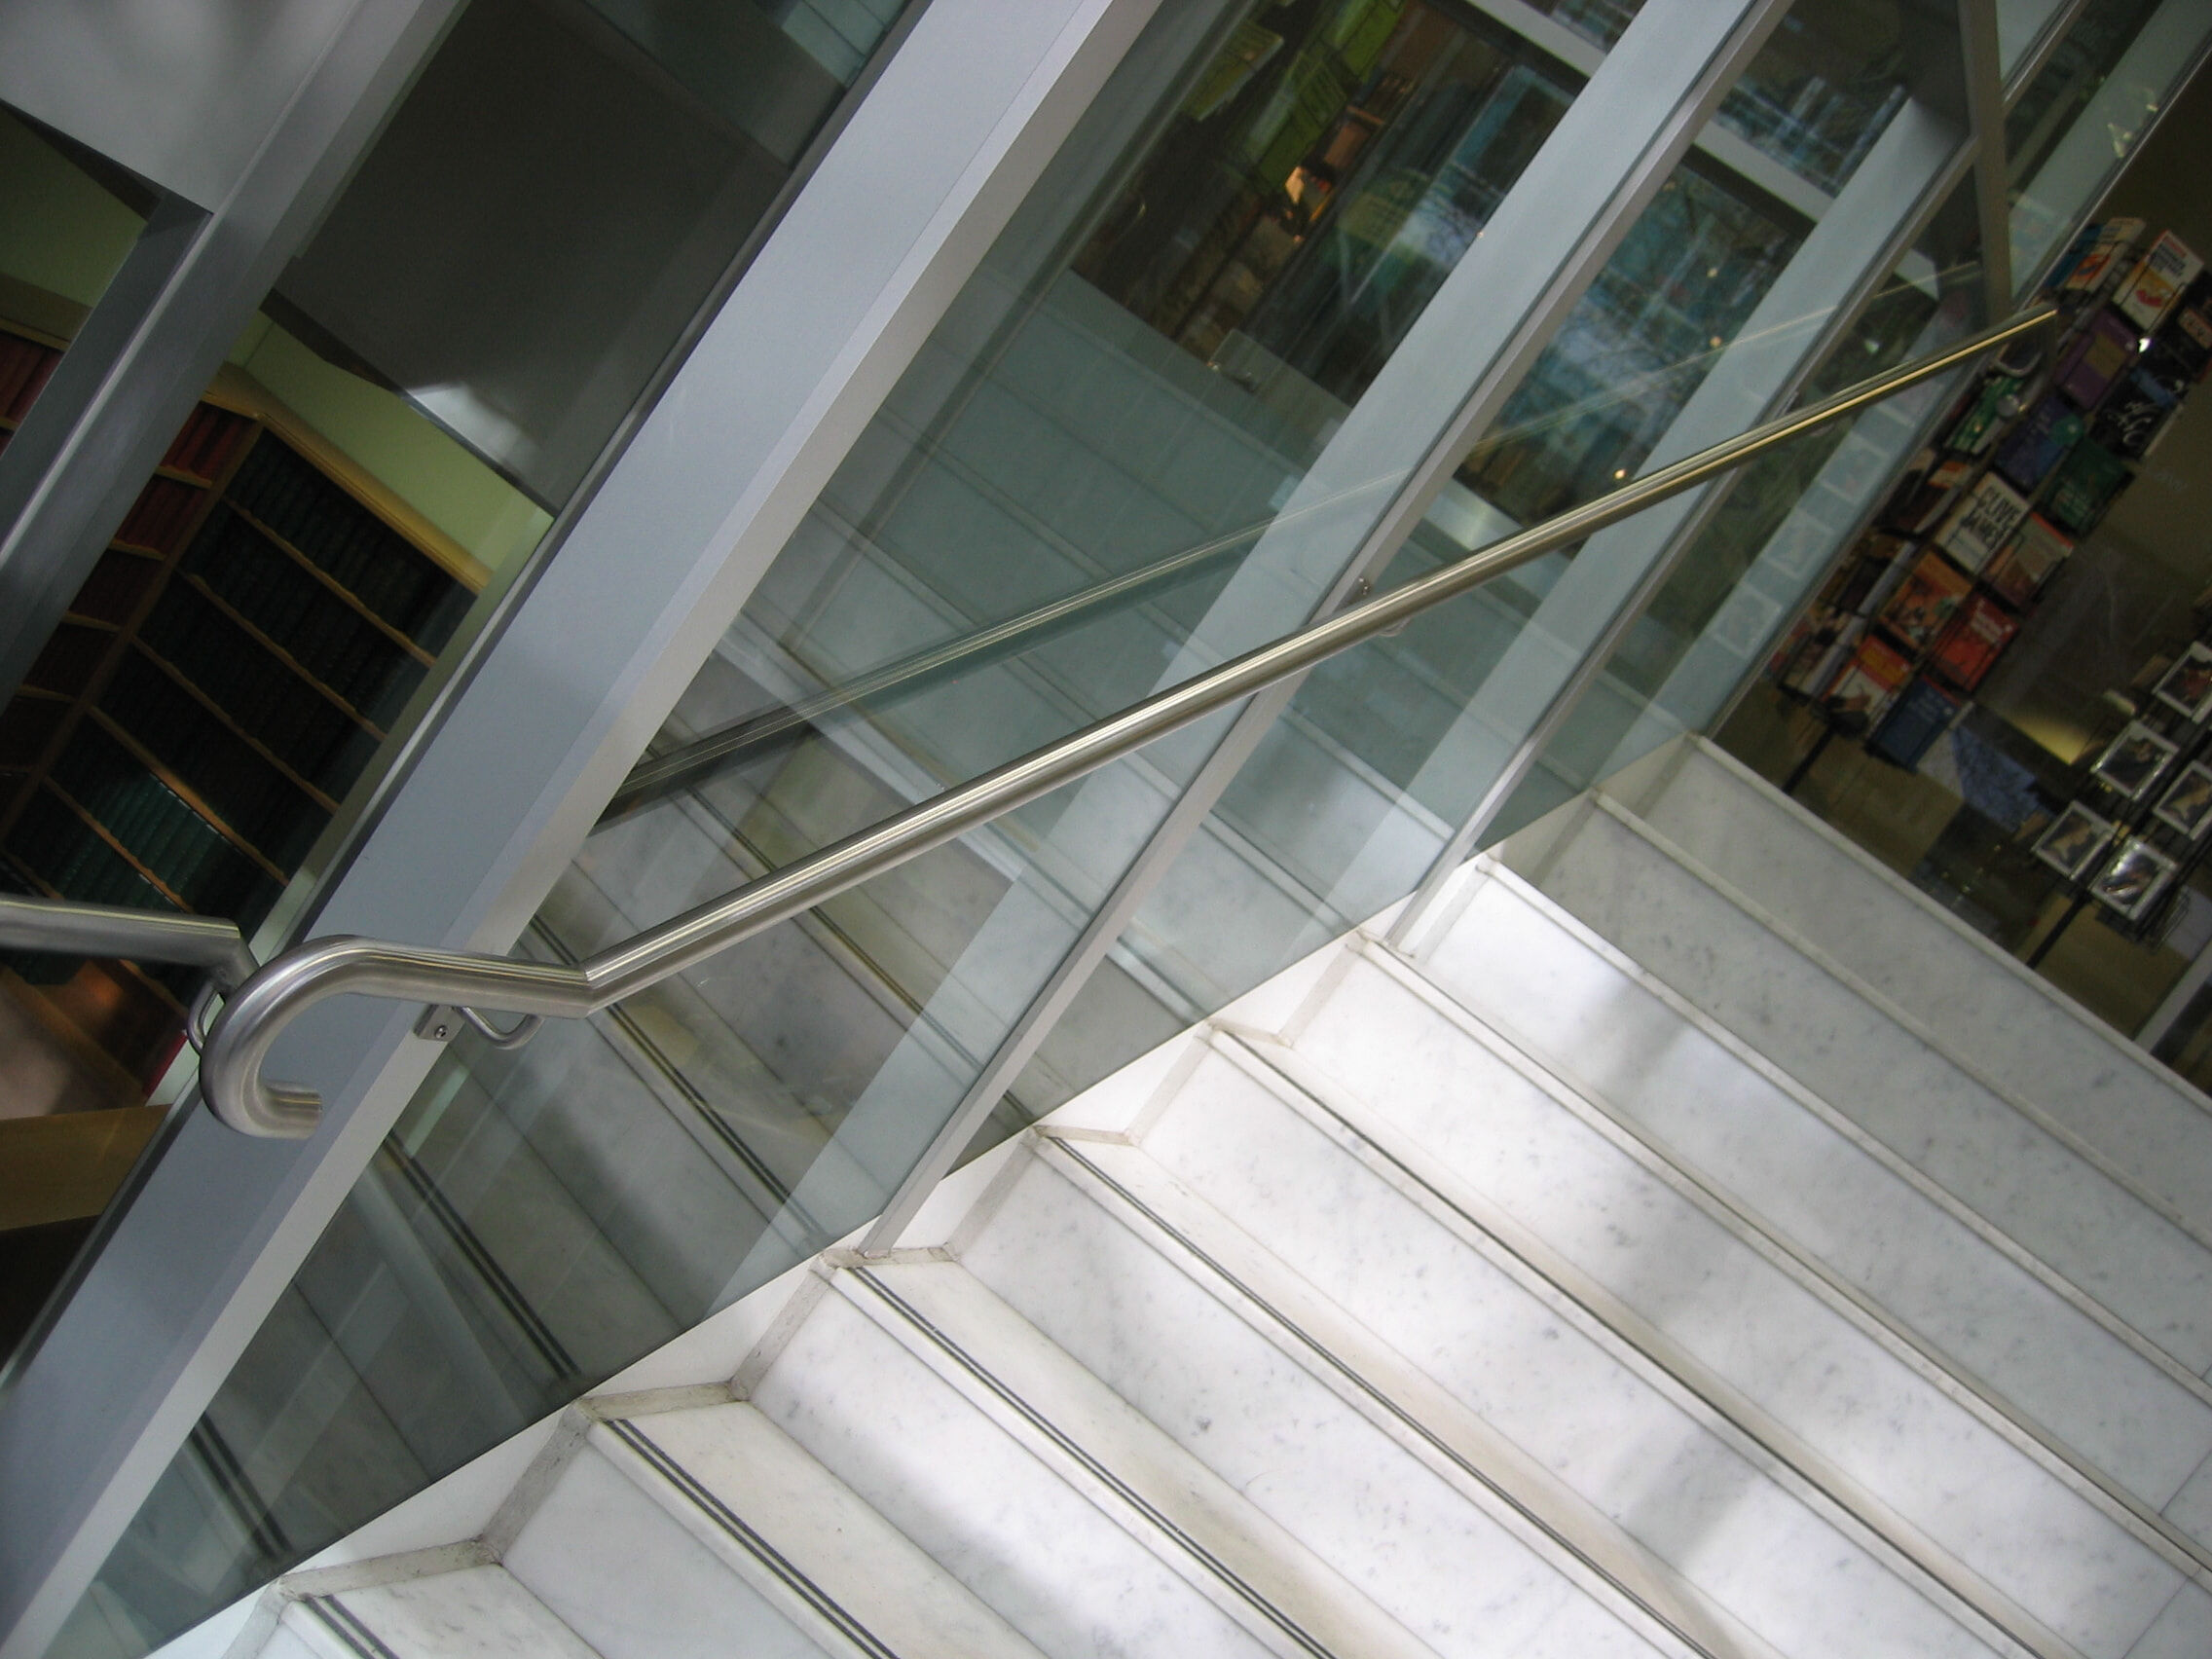 Access stairs handrail